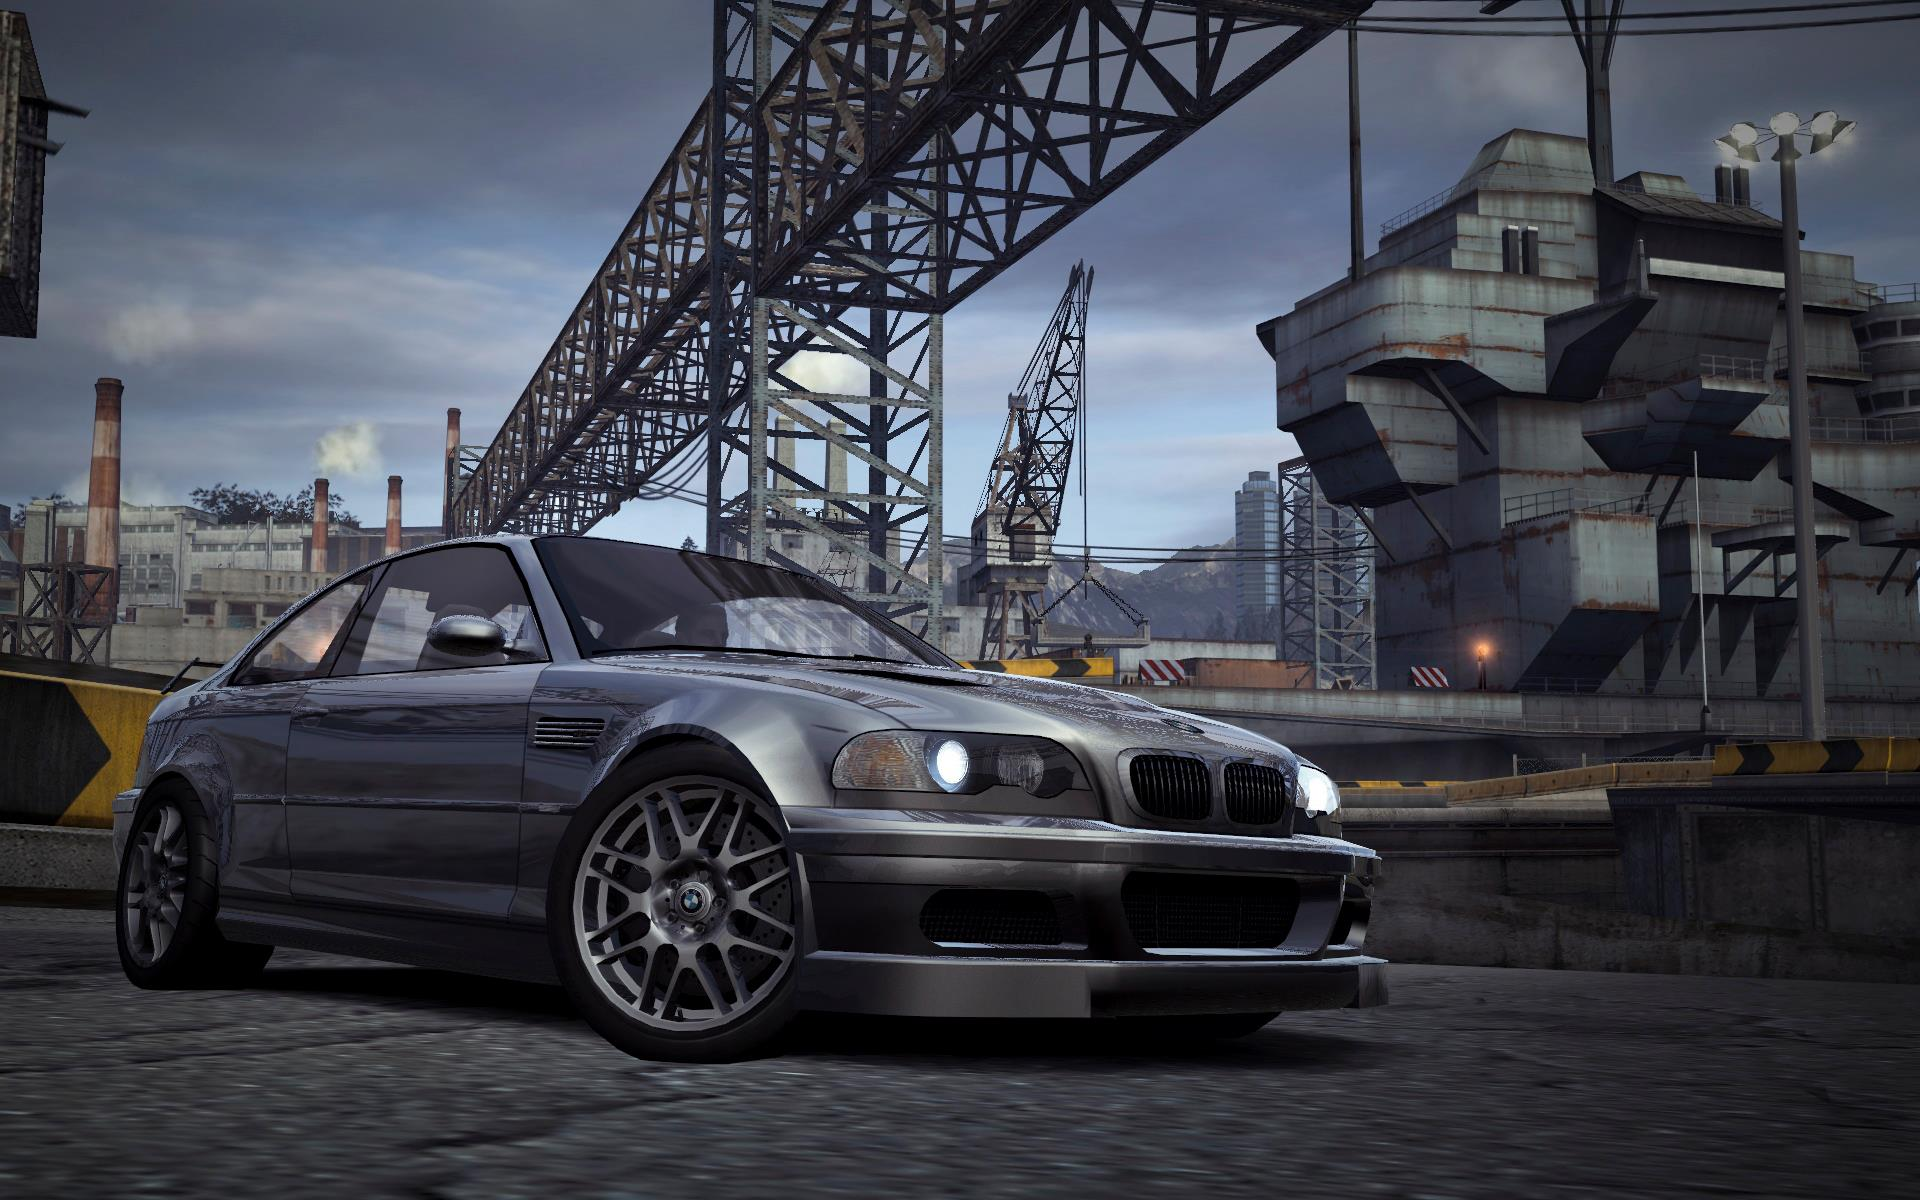 Bmw M3 Gtr E46 Nfs World Wiki Fandom Powered By Wikia